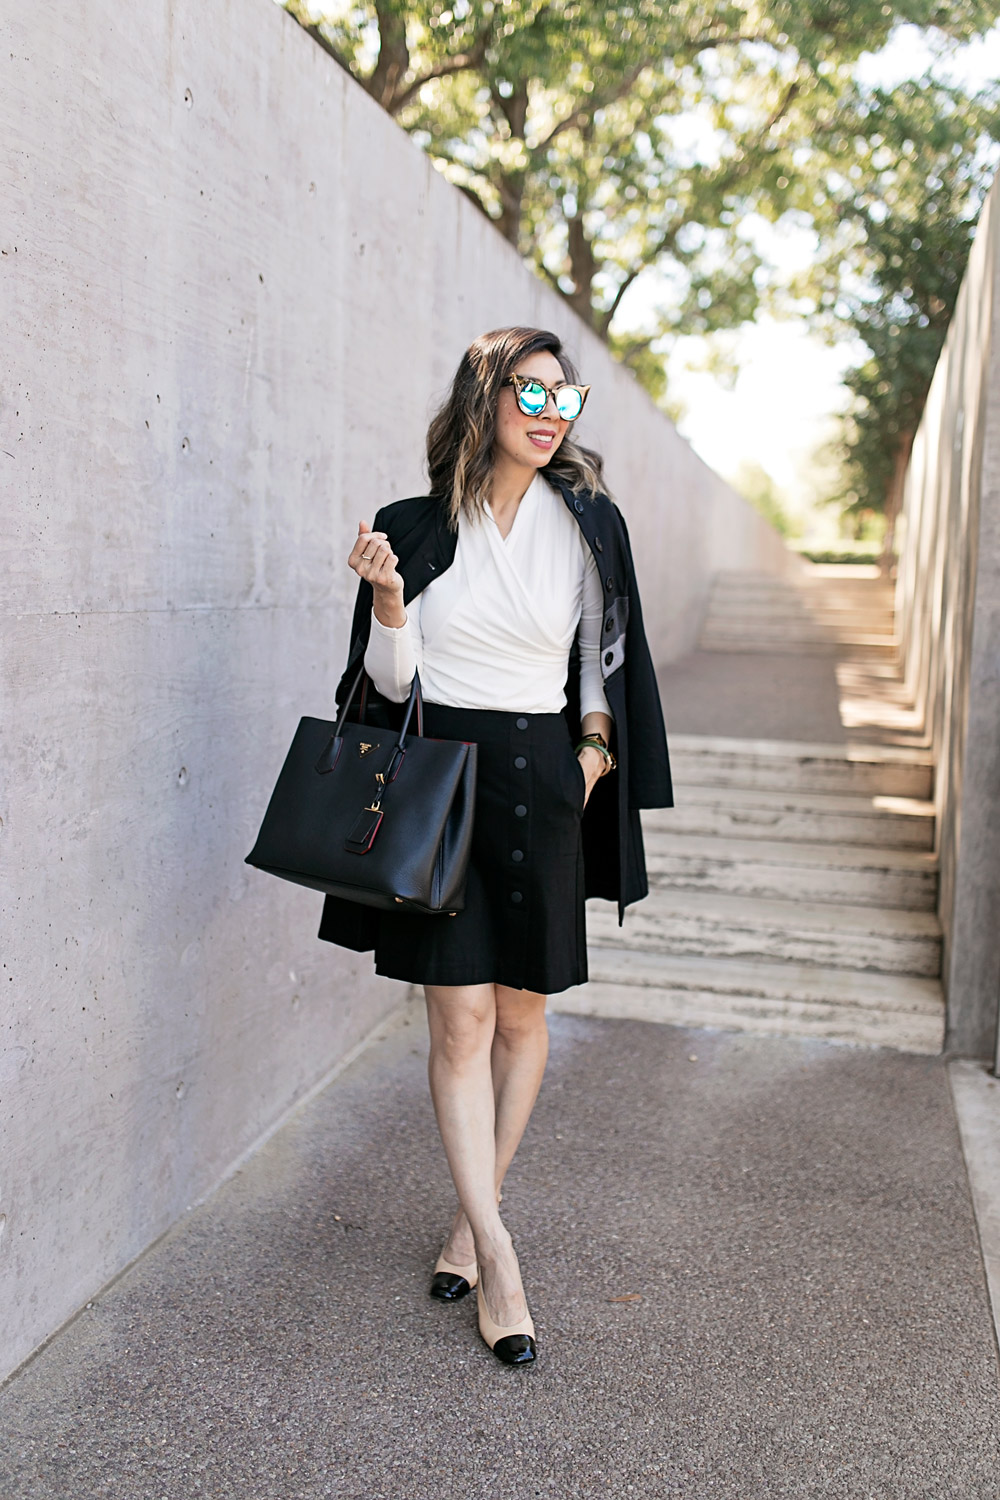 cabi wrap tee and utility skirt with chanel slingbacks for a black and white work outfit